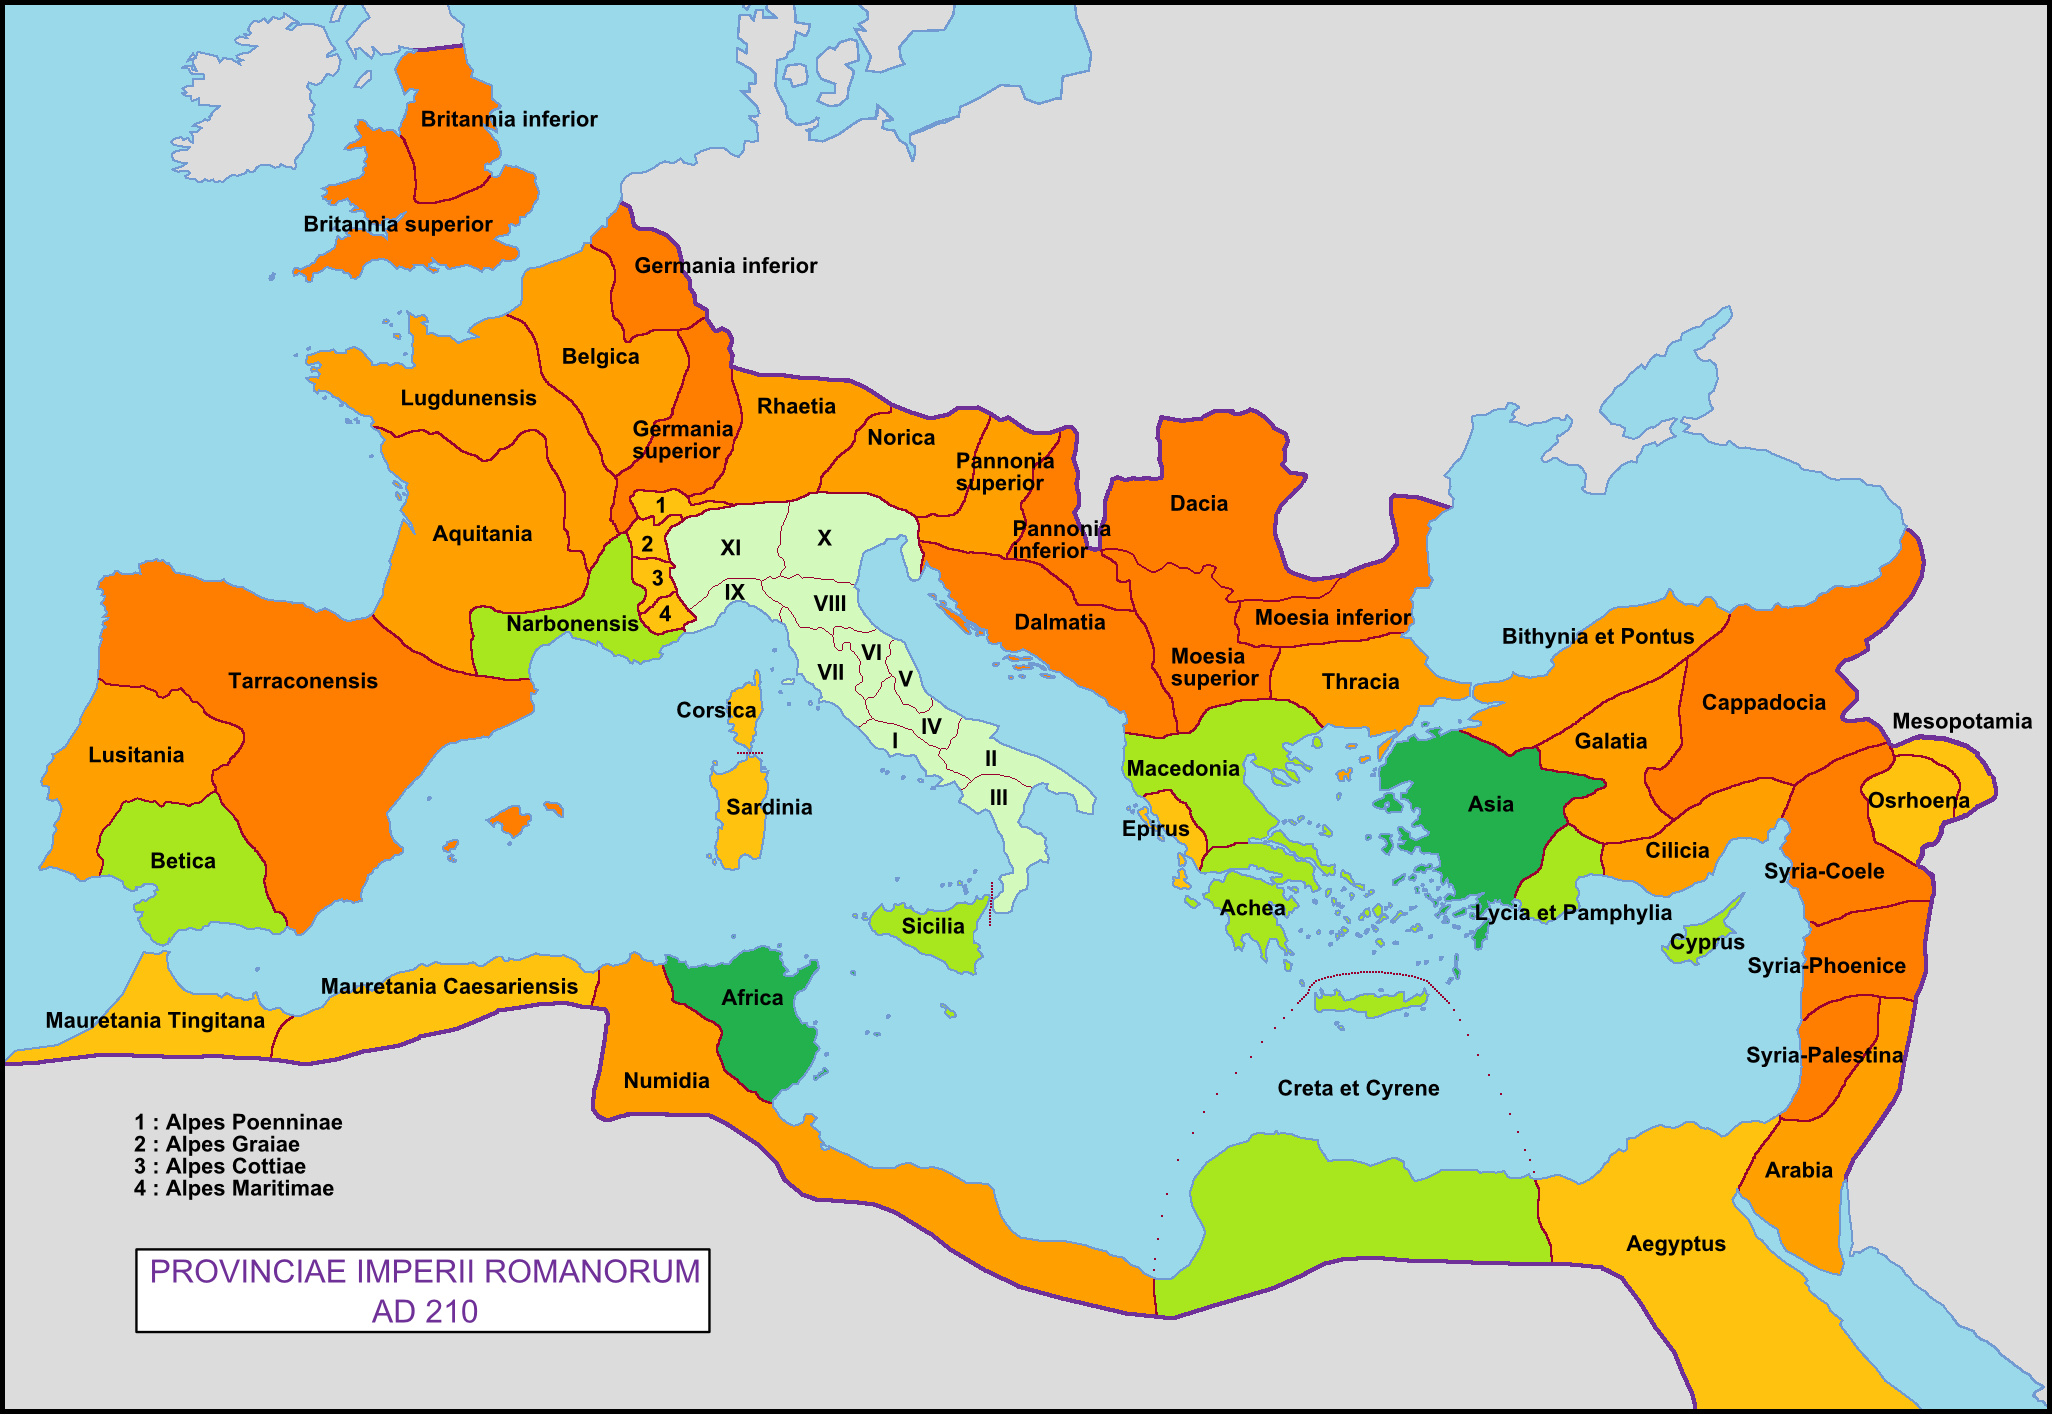 The map of Roman provinces